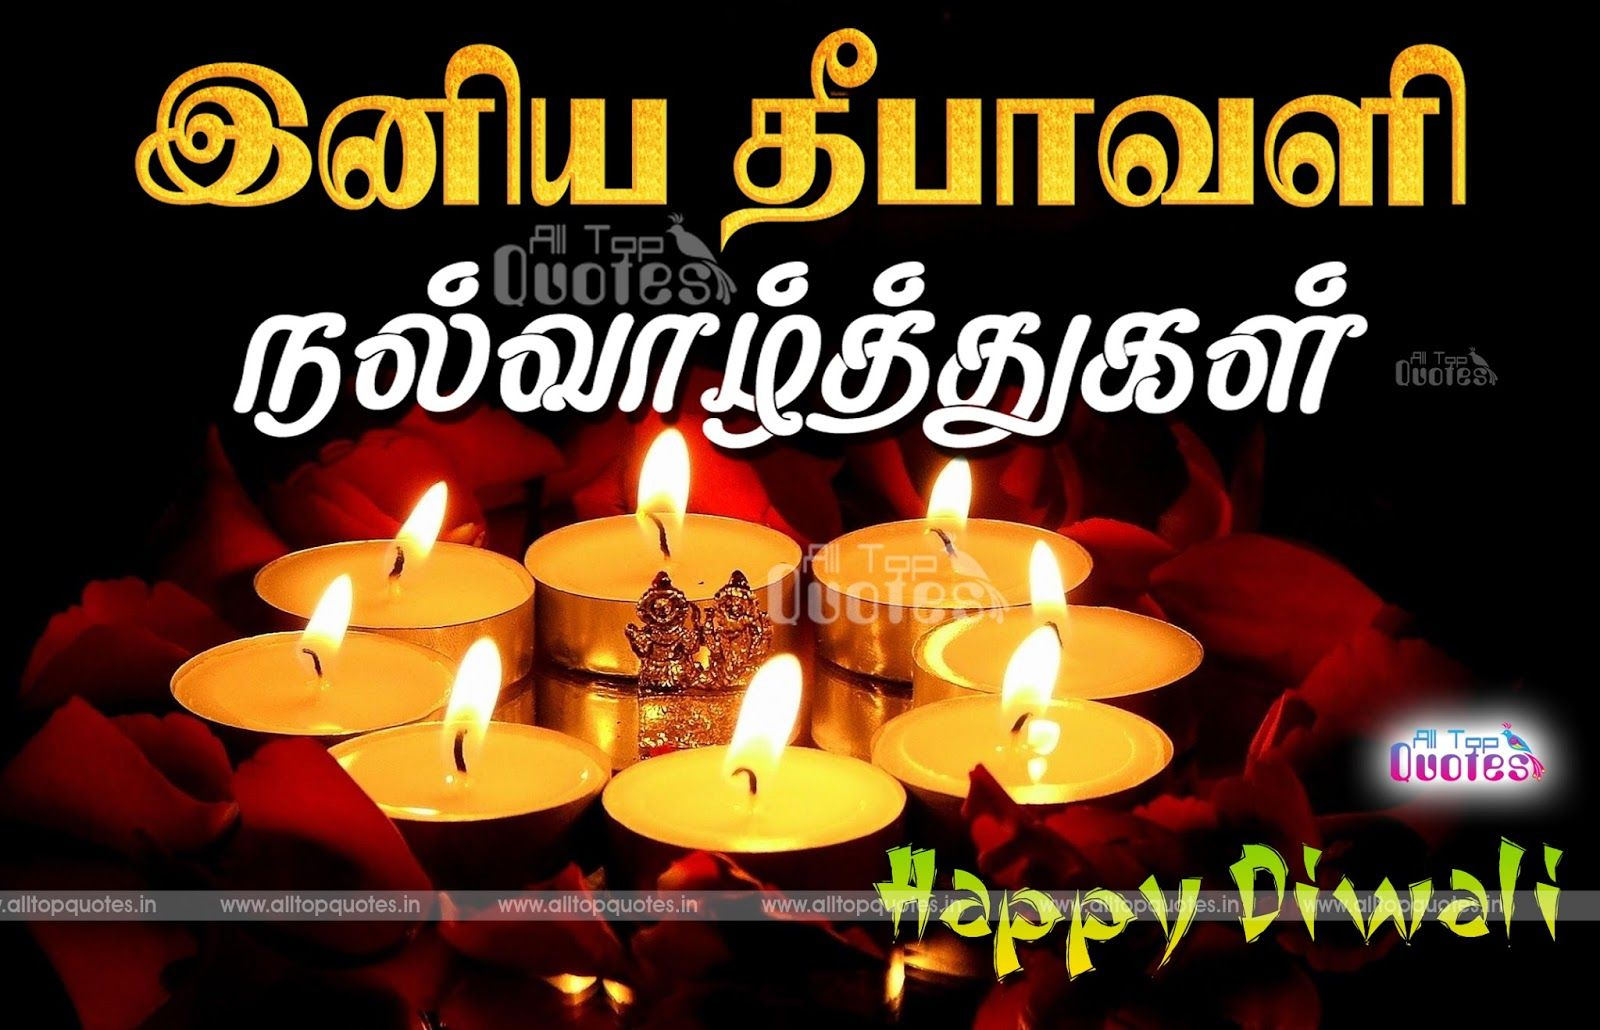 Happy Diwali Tamil Greetings Quotes Online Hd Images All Top